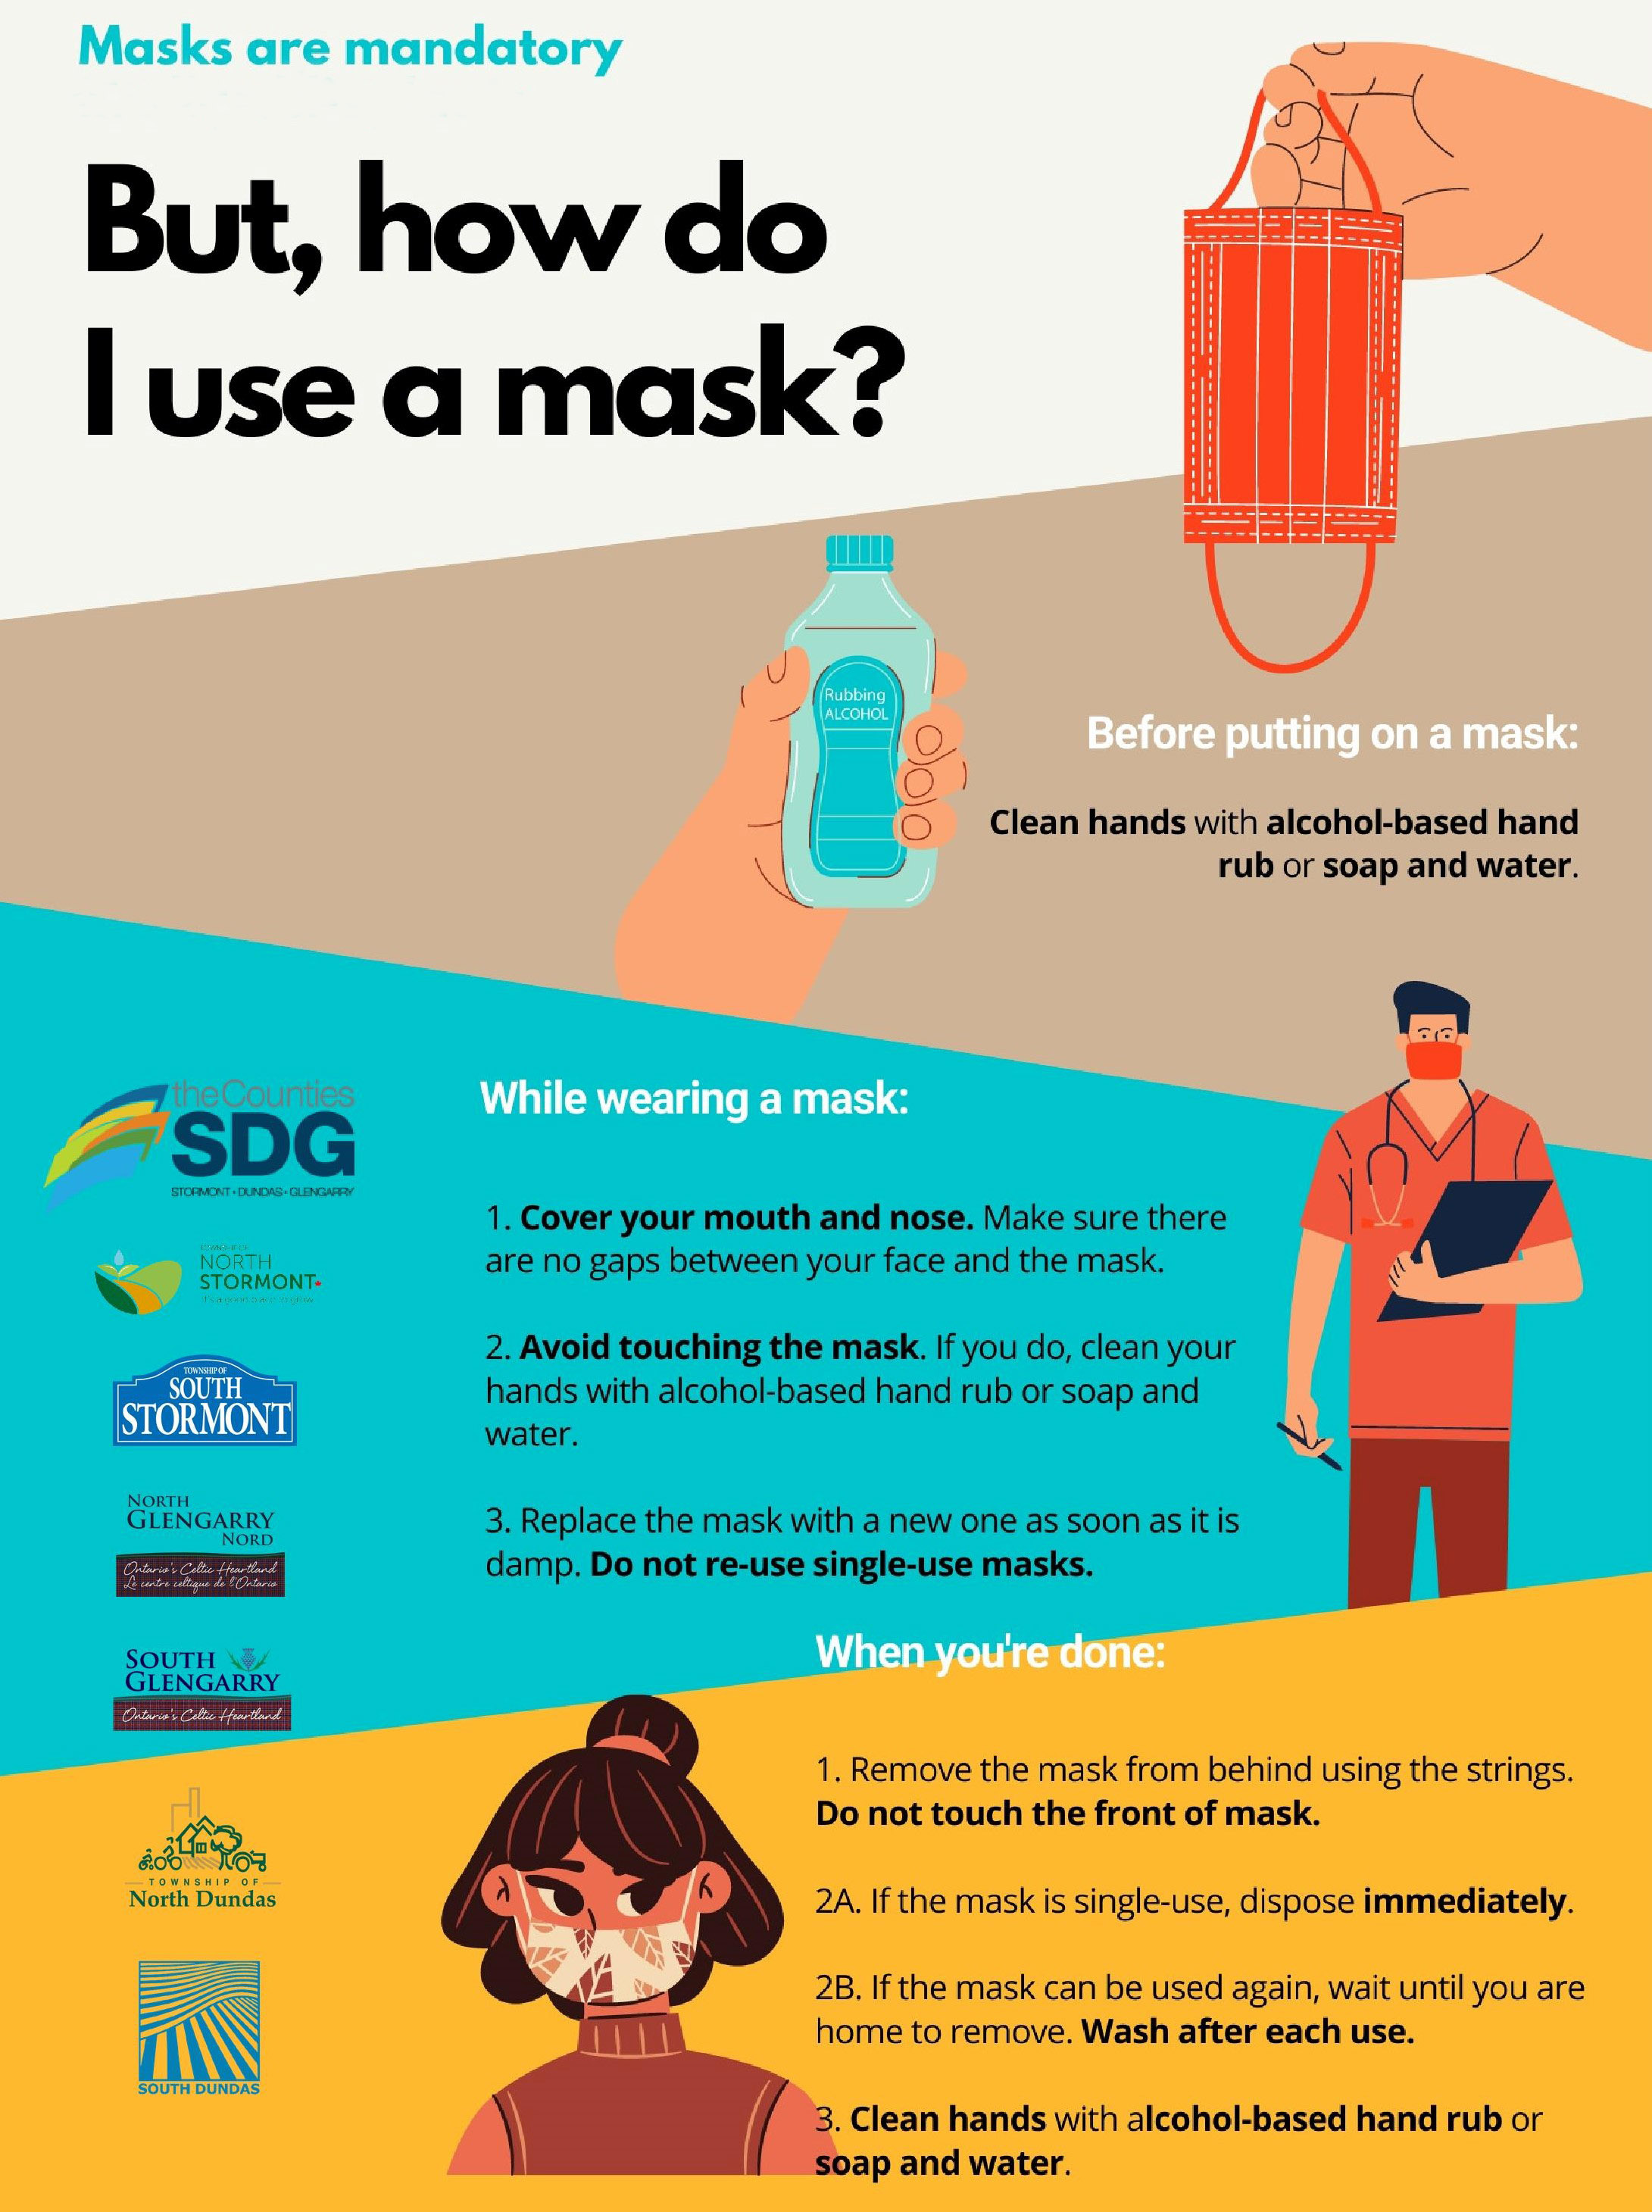 Image Depicts masks use on a colour background with a list of municipal logos. Text details the proper way to use a face mask.